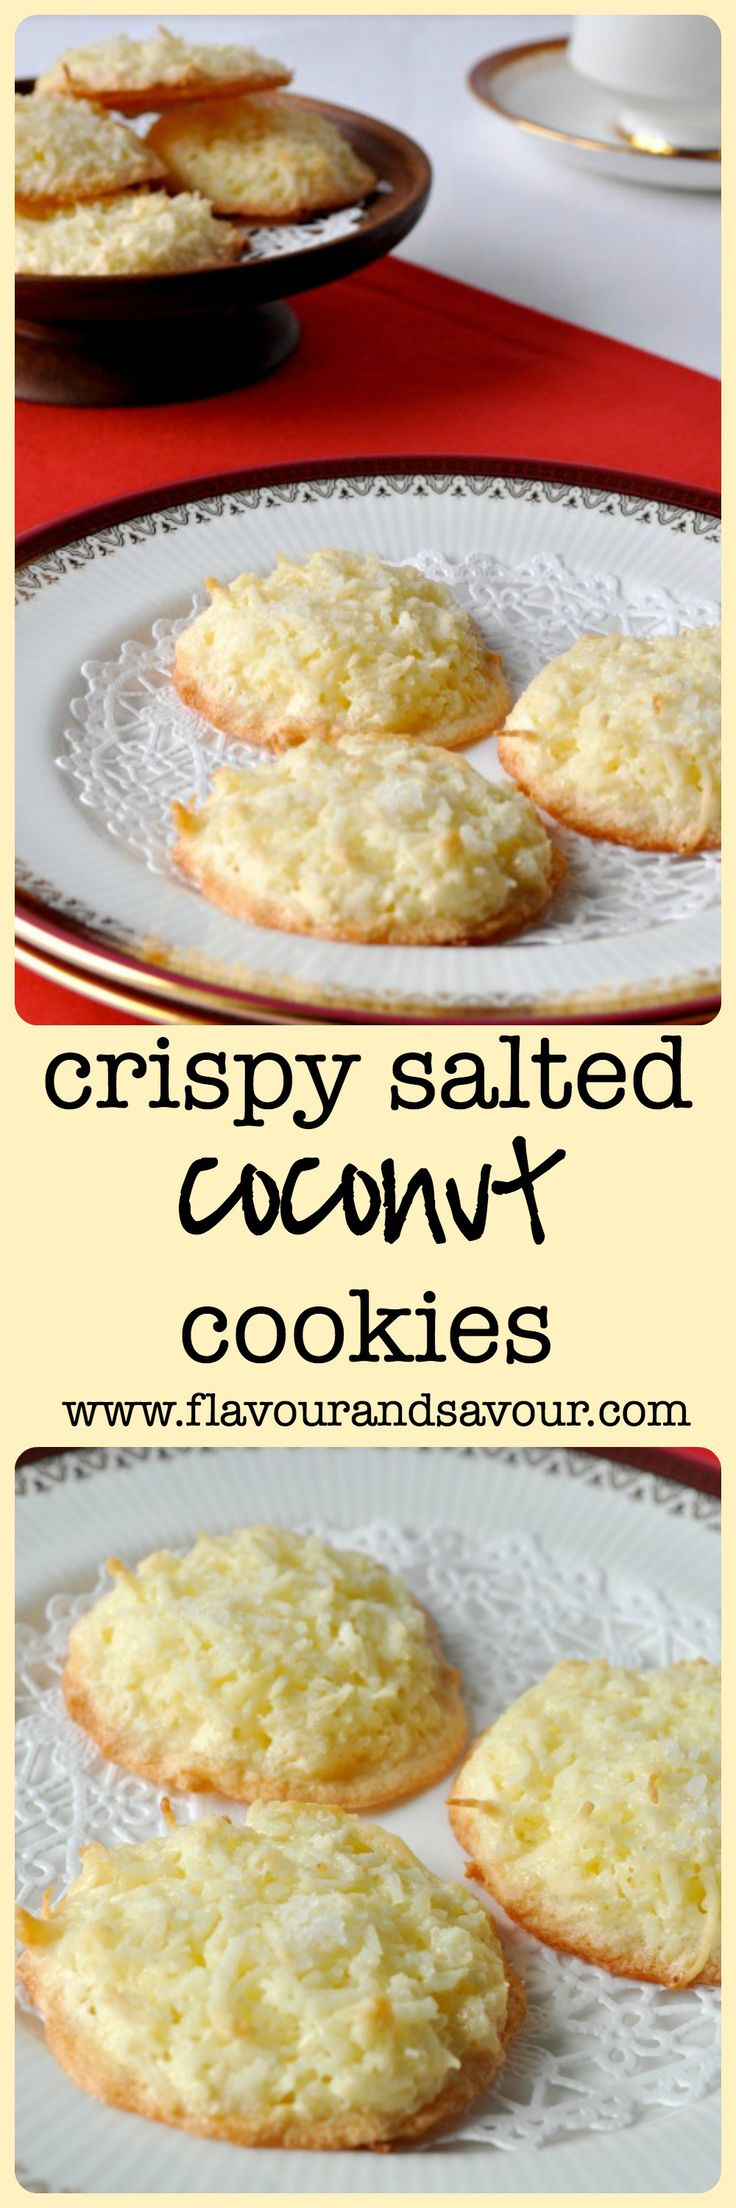 Crispy Salted Coconut Cookies. First to disappear from the cookie tray.  www.flavourandsavour.com